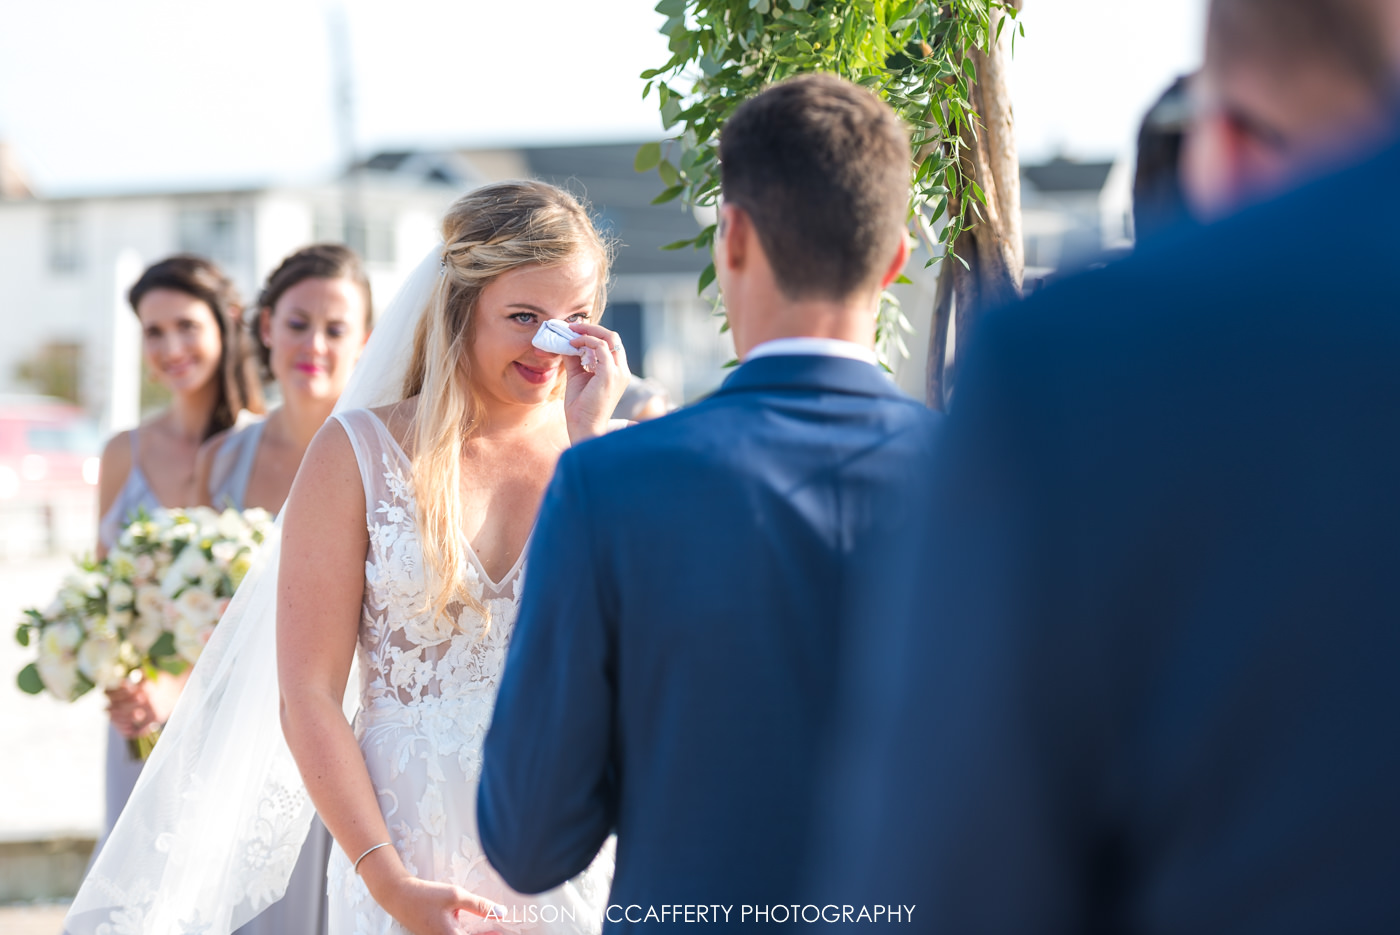 Outdoor wedding ceremony at Brant Beach Yacht Club in LBI